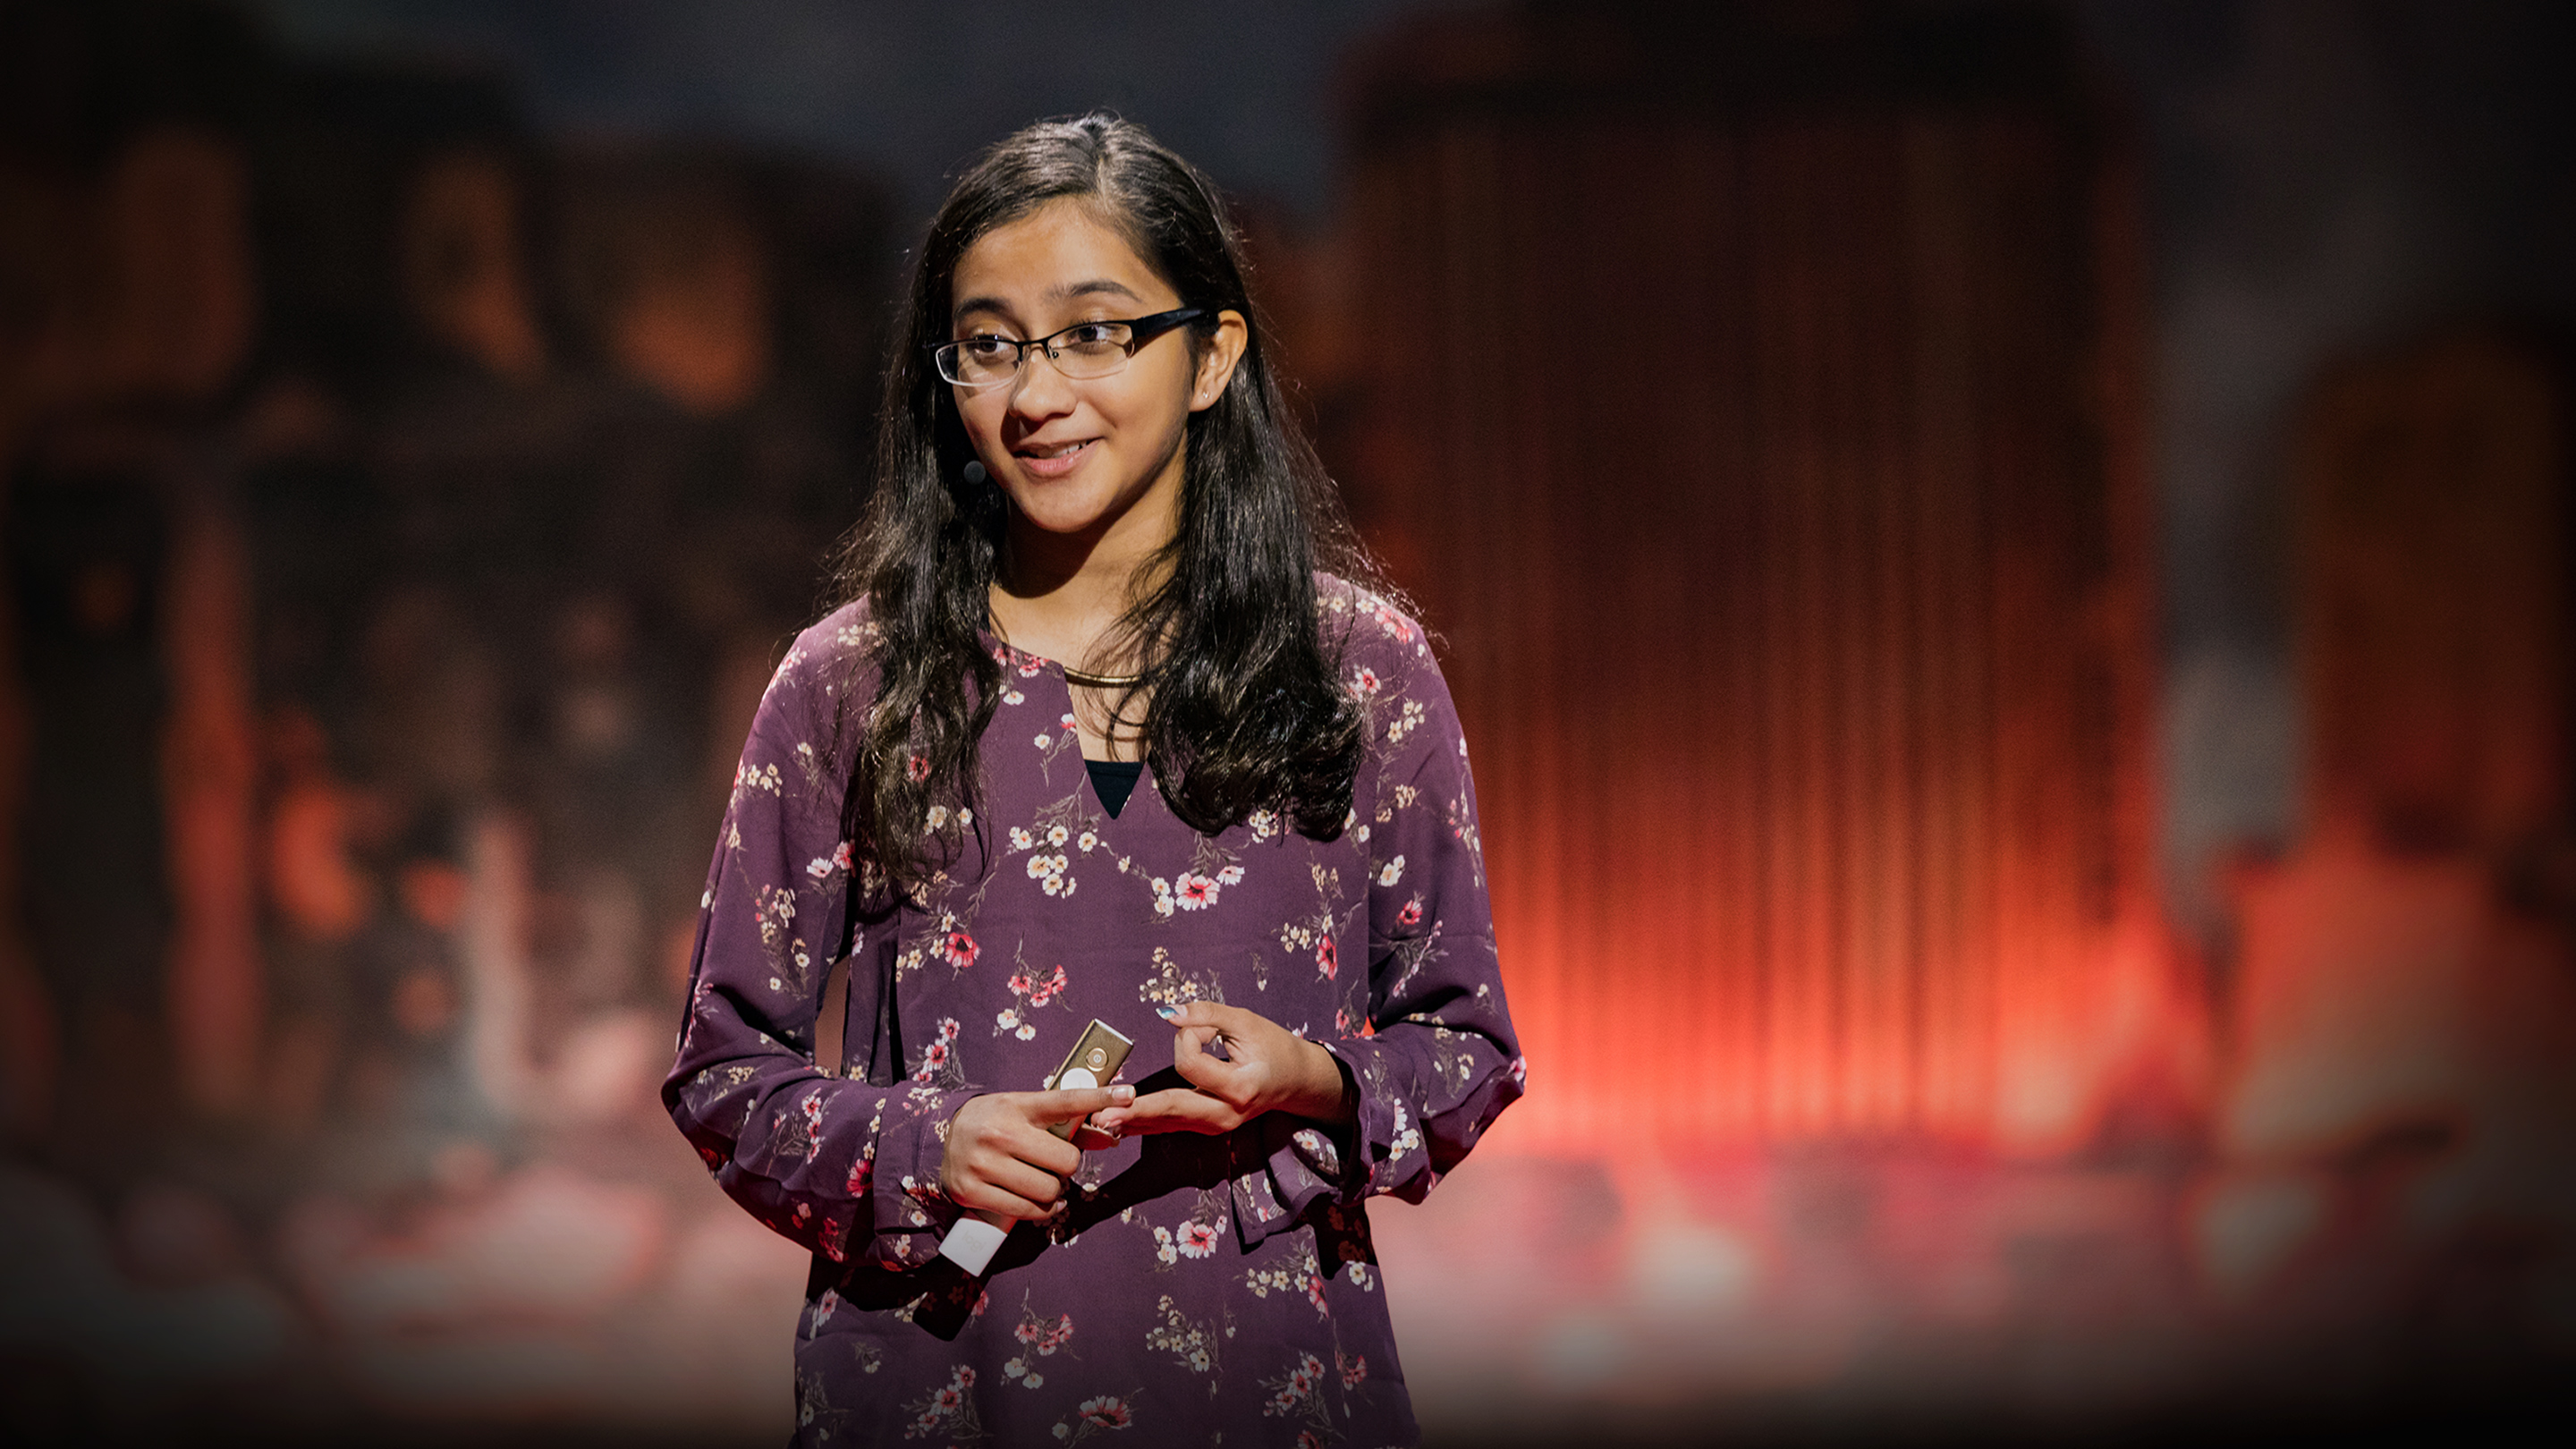 A teen scientist's invention to help wounds heal